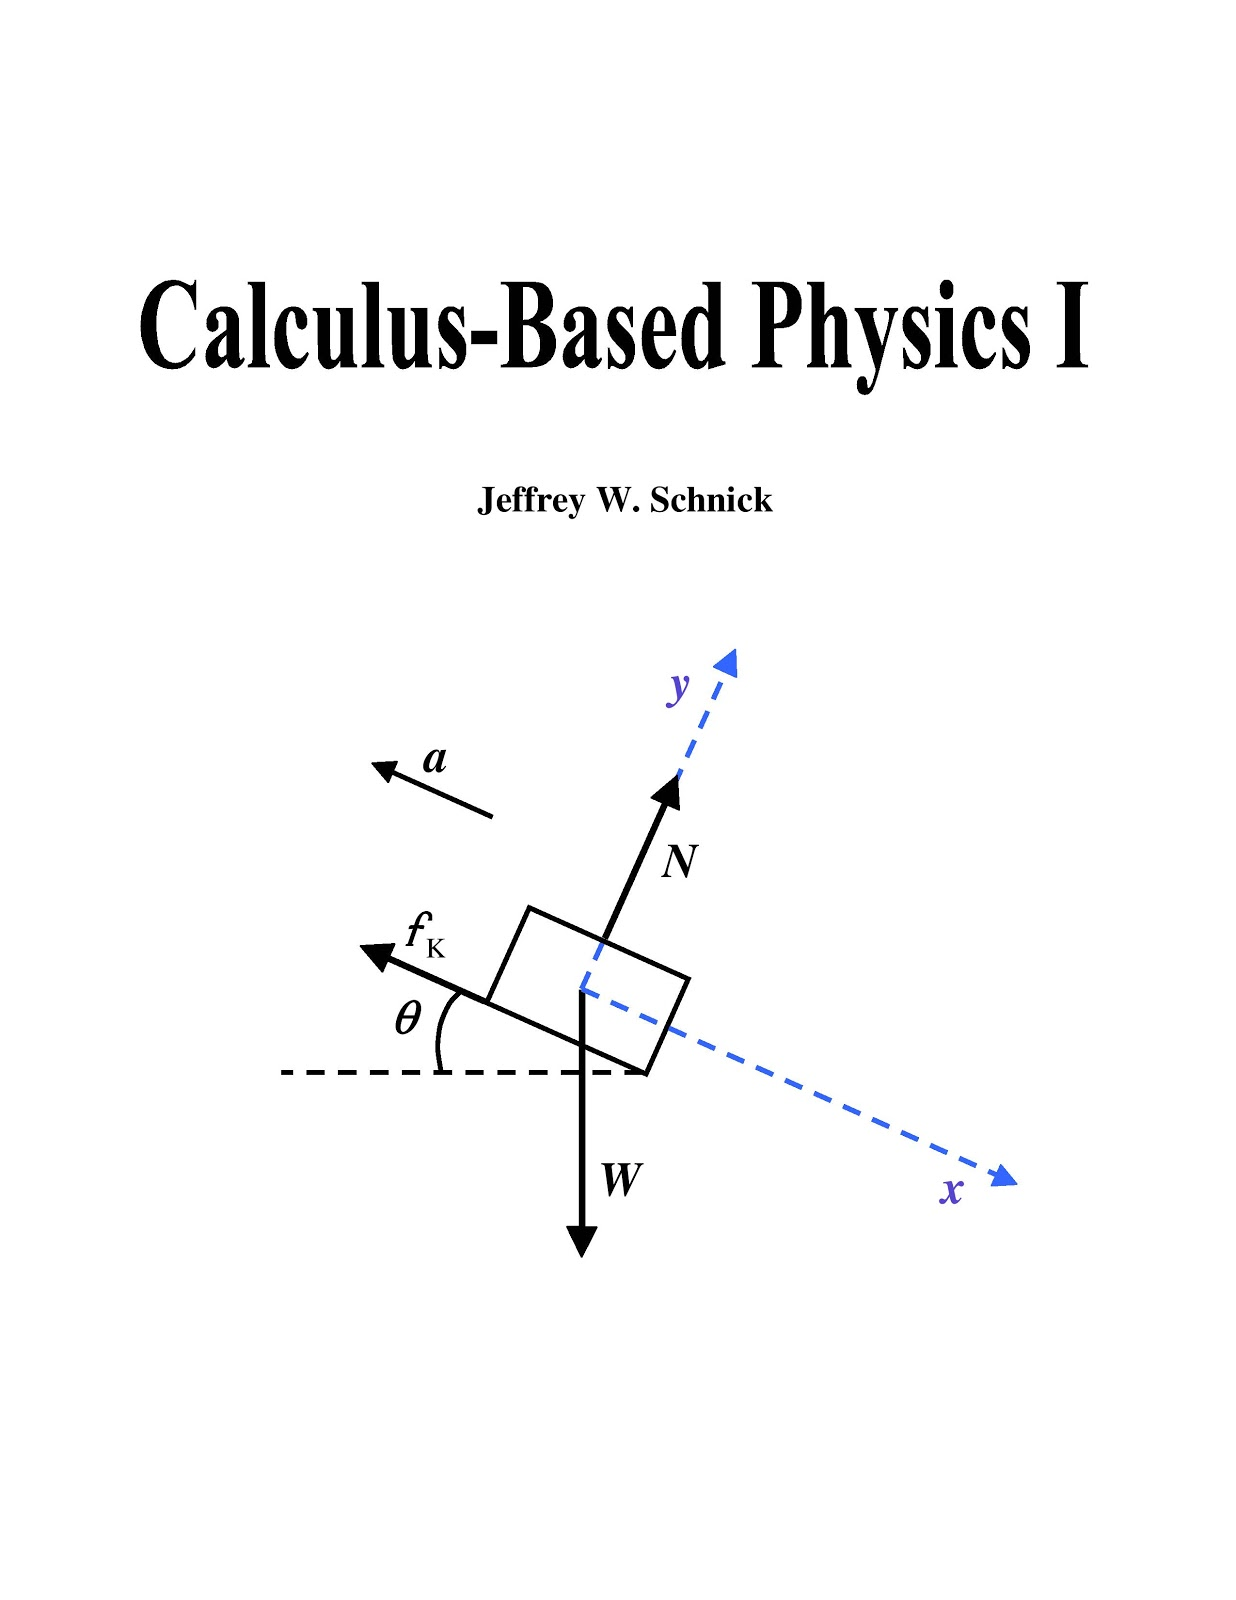 High Definition Ebooks Calculus Based Physics Volume I. Enterprise Accounting Software Packages. The Planet Web Hosting Mustang Insurance Cost. Best Wireless Home Security System Reviews. Mobile Customer Engagement If I Owe The Irs. Solve Each Equation By Factoring. How Much Does Hair Laser Removal Cost. Air Conditioning Austin Tx Relocate To Canada. Java Virtual Machine 1 7 Download